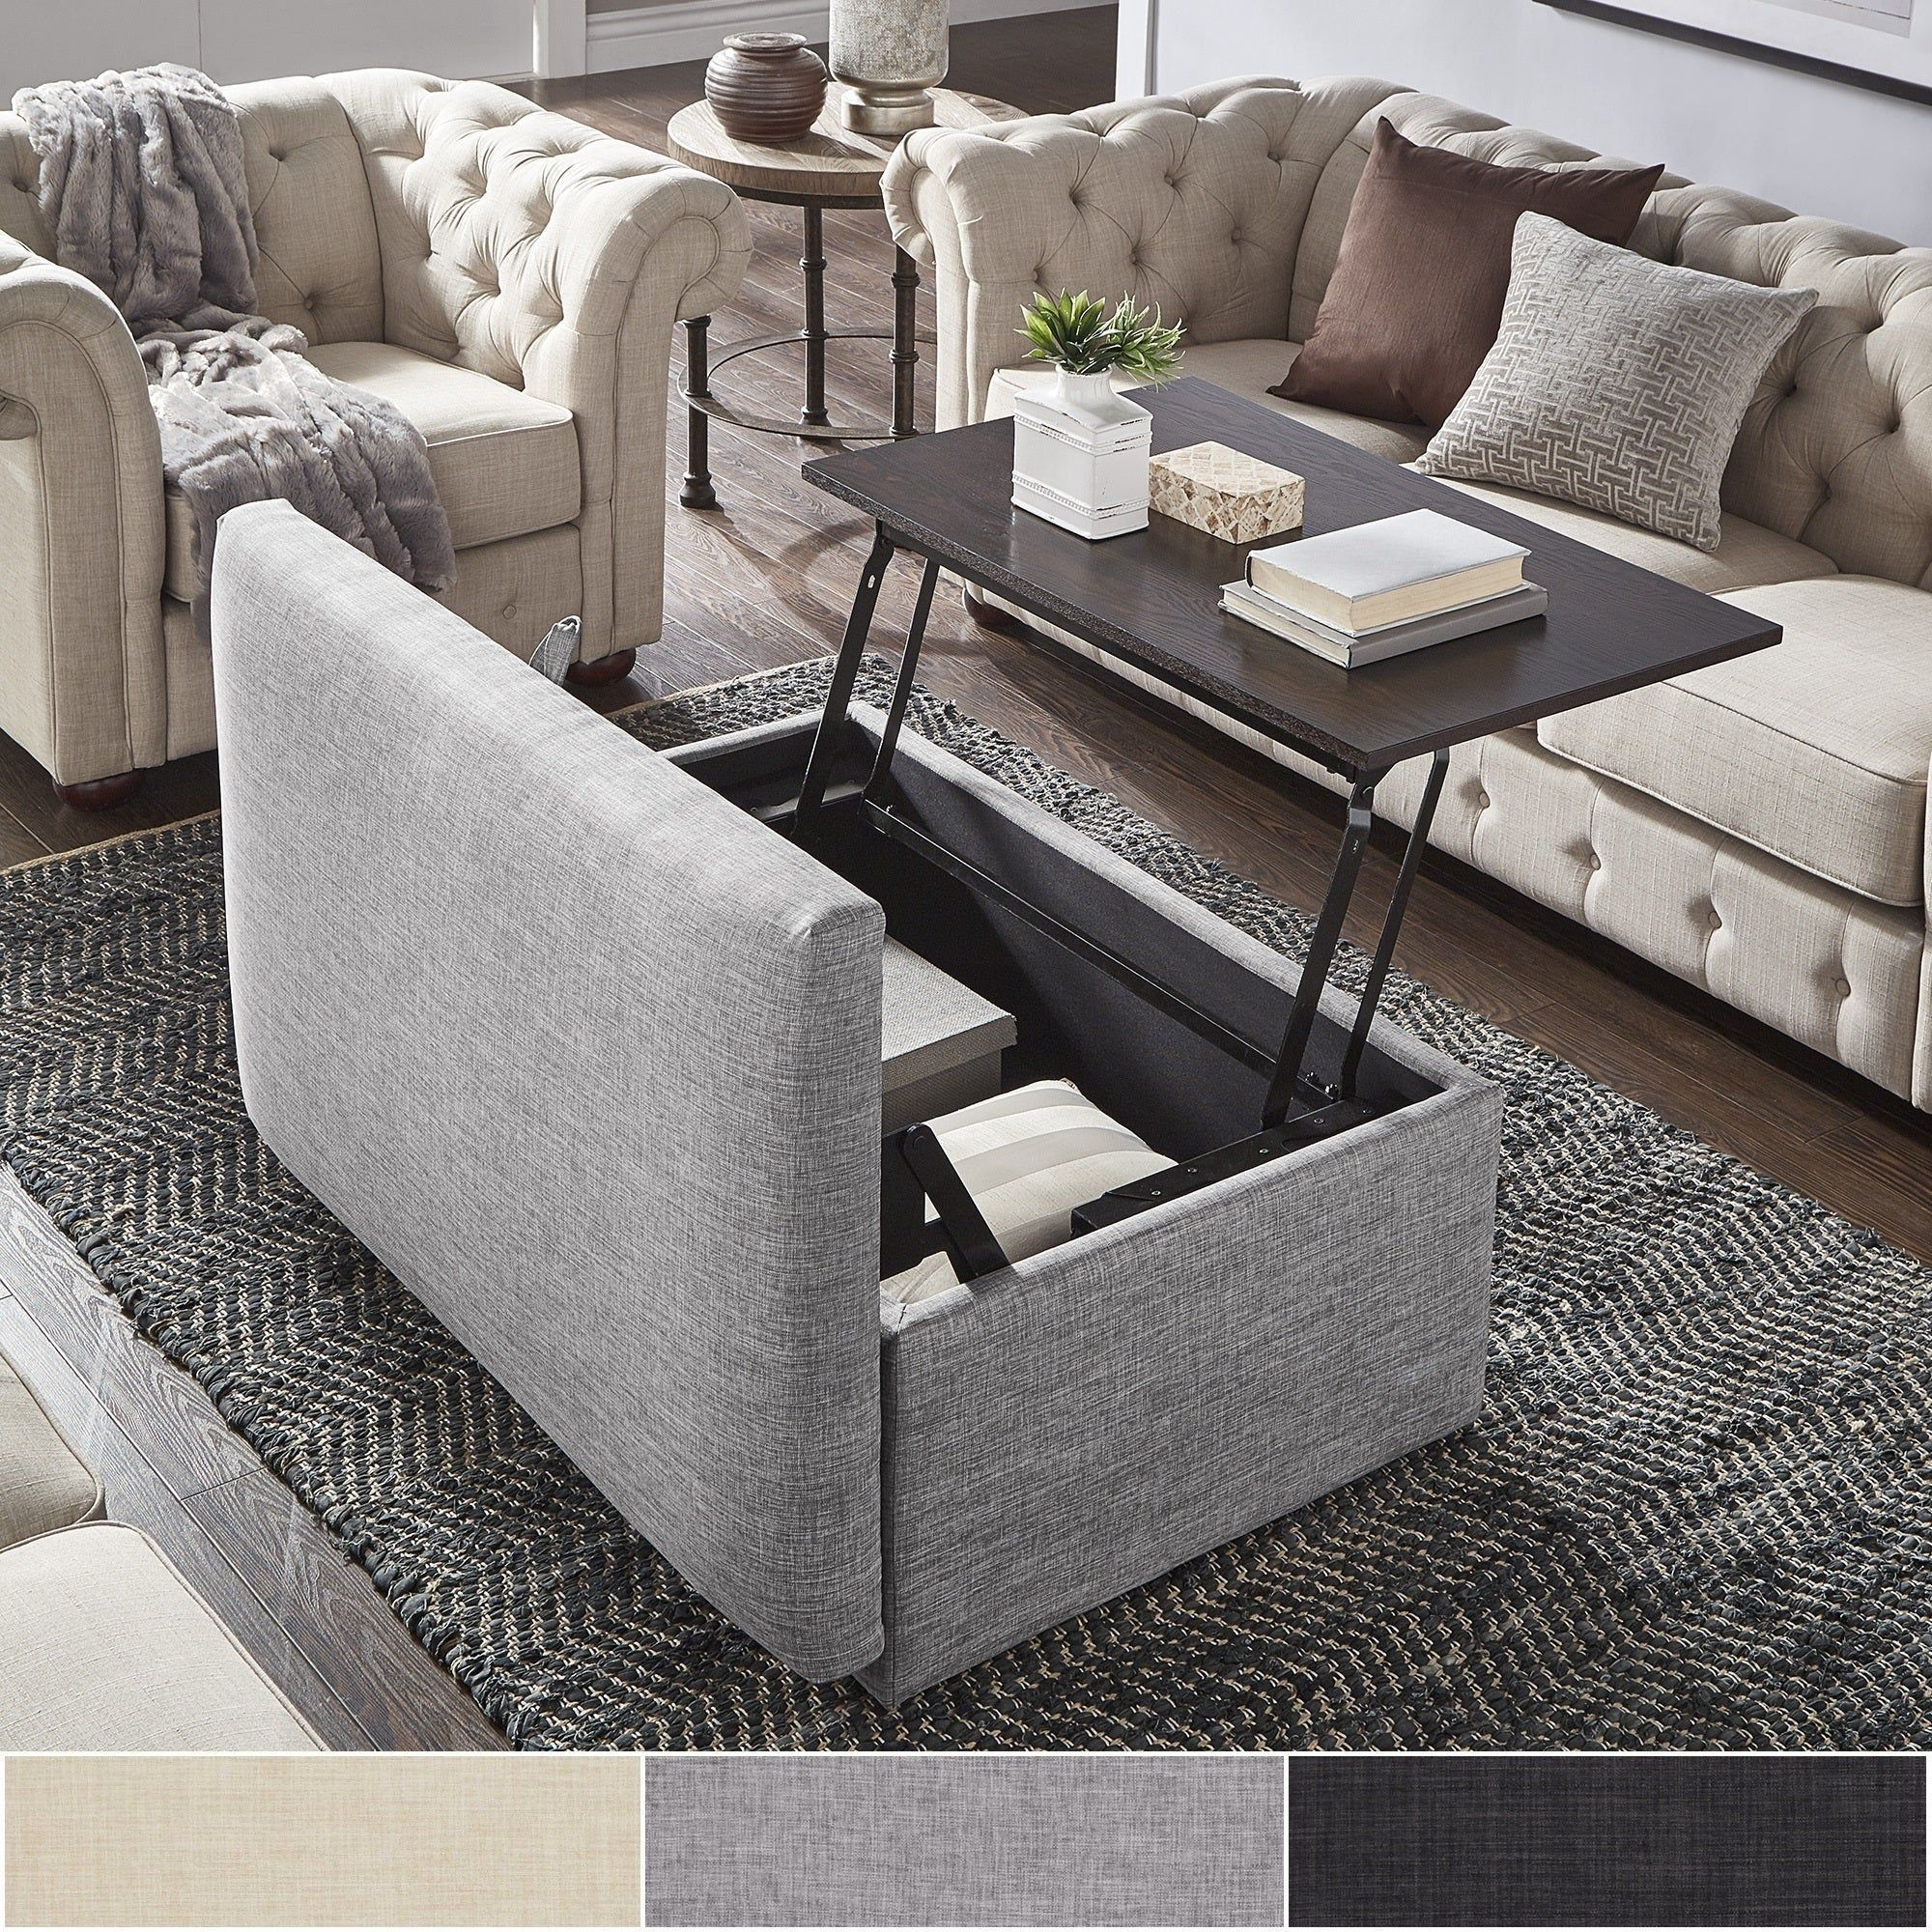 15 Beautiful Lift Top Coffee Tables You Can Buy Cool Things To Buy 247 Storage Ottoman Coffee Table Living Room Coffee Table Coffee Table [ 2000 x 2000 Pixel ]